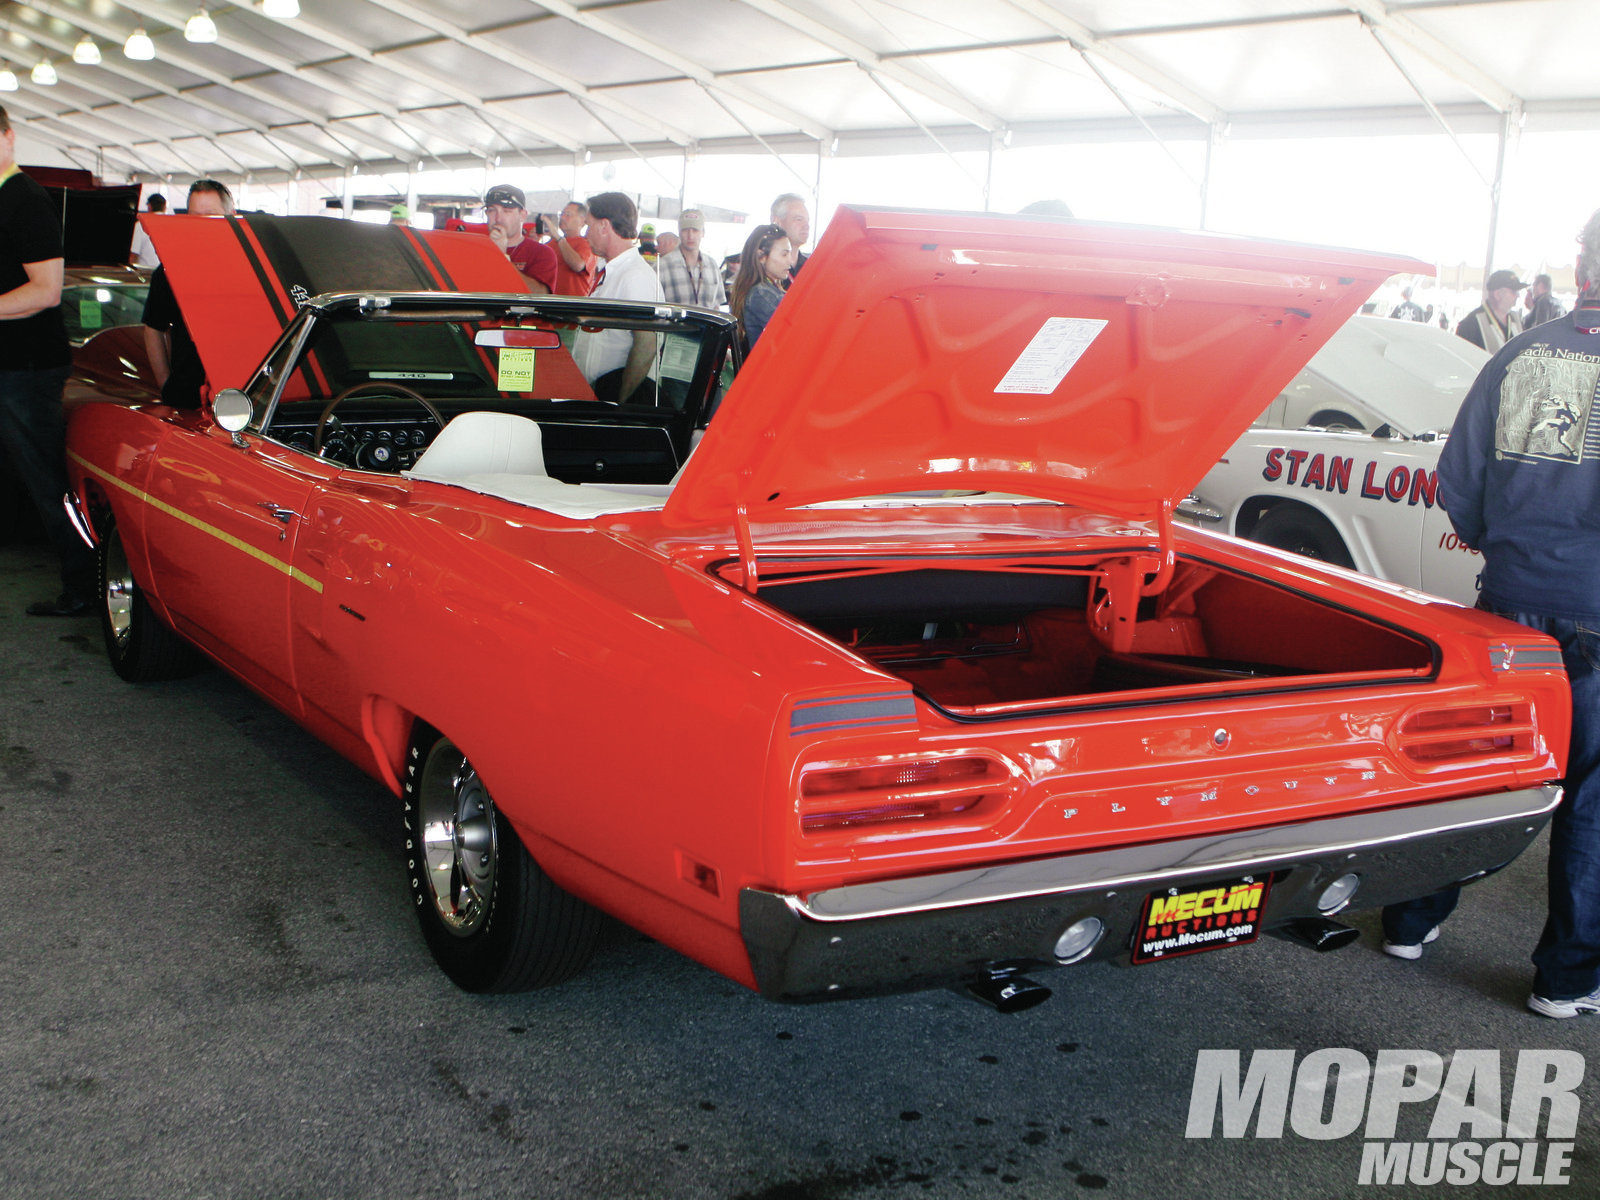 Solid Prices for Mopars at 2013 Winter Auctions - Mopar Muscle ...